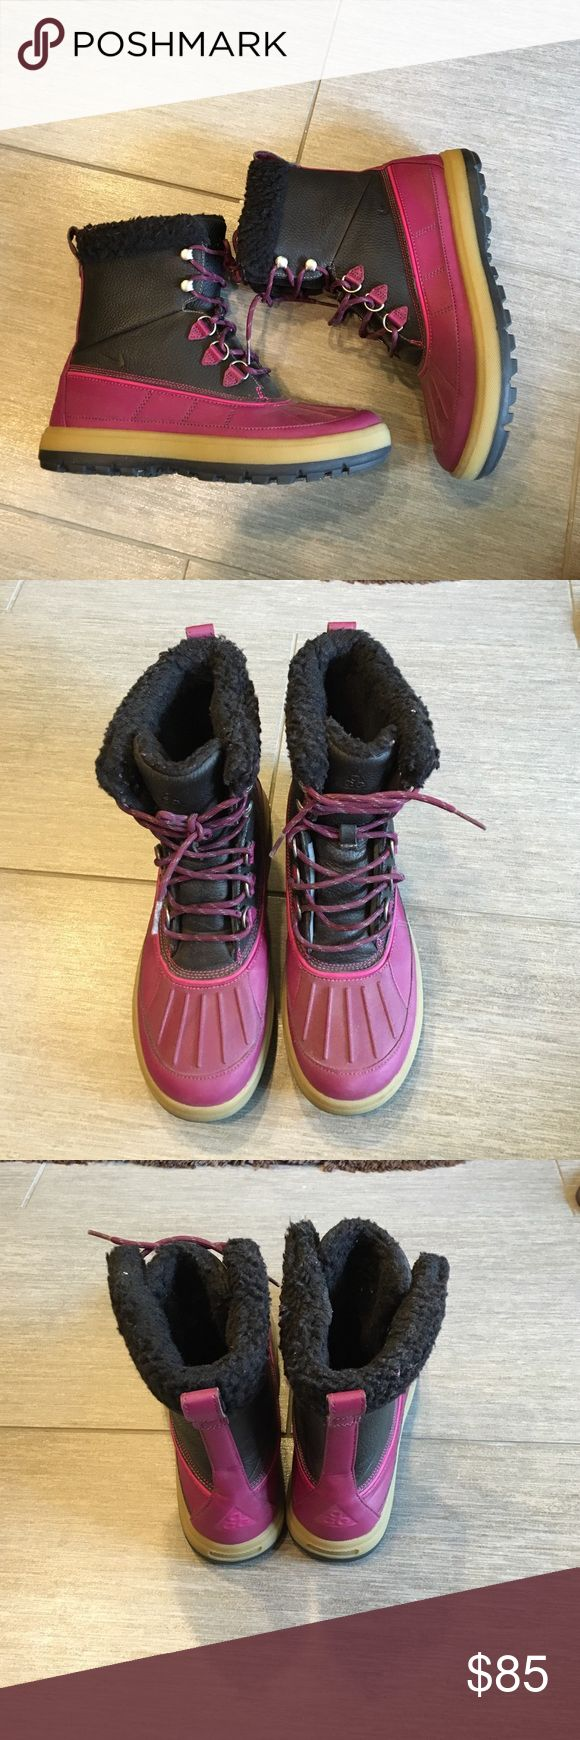 NIKE ACG Duck Boots These women's Nike boots are super cute and warm! These stylish nikes can go with snow gear, cute skinny jeans, or even a cute Nike sweat suit. I only wore them a handful of times. A couple scratches inside of right boot on leather (pic#4) Good in rain or snow! Nike Shoes Winter & Rain Boots